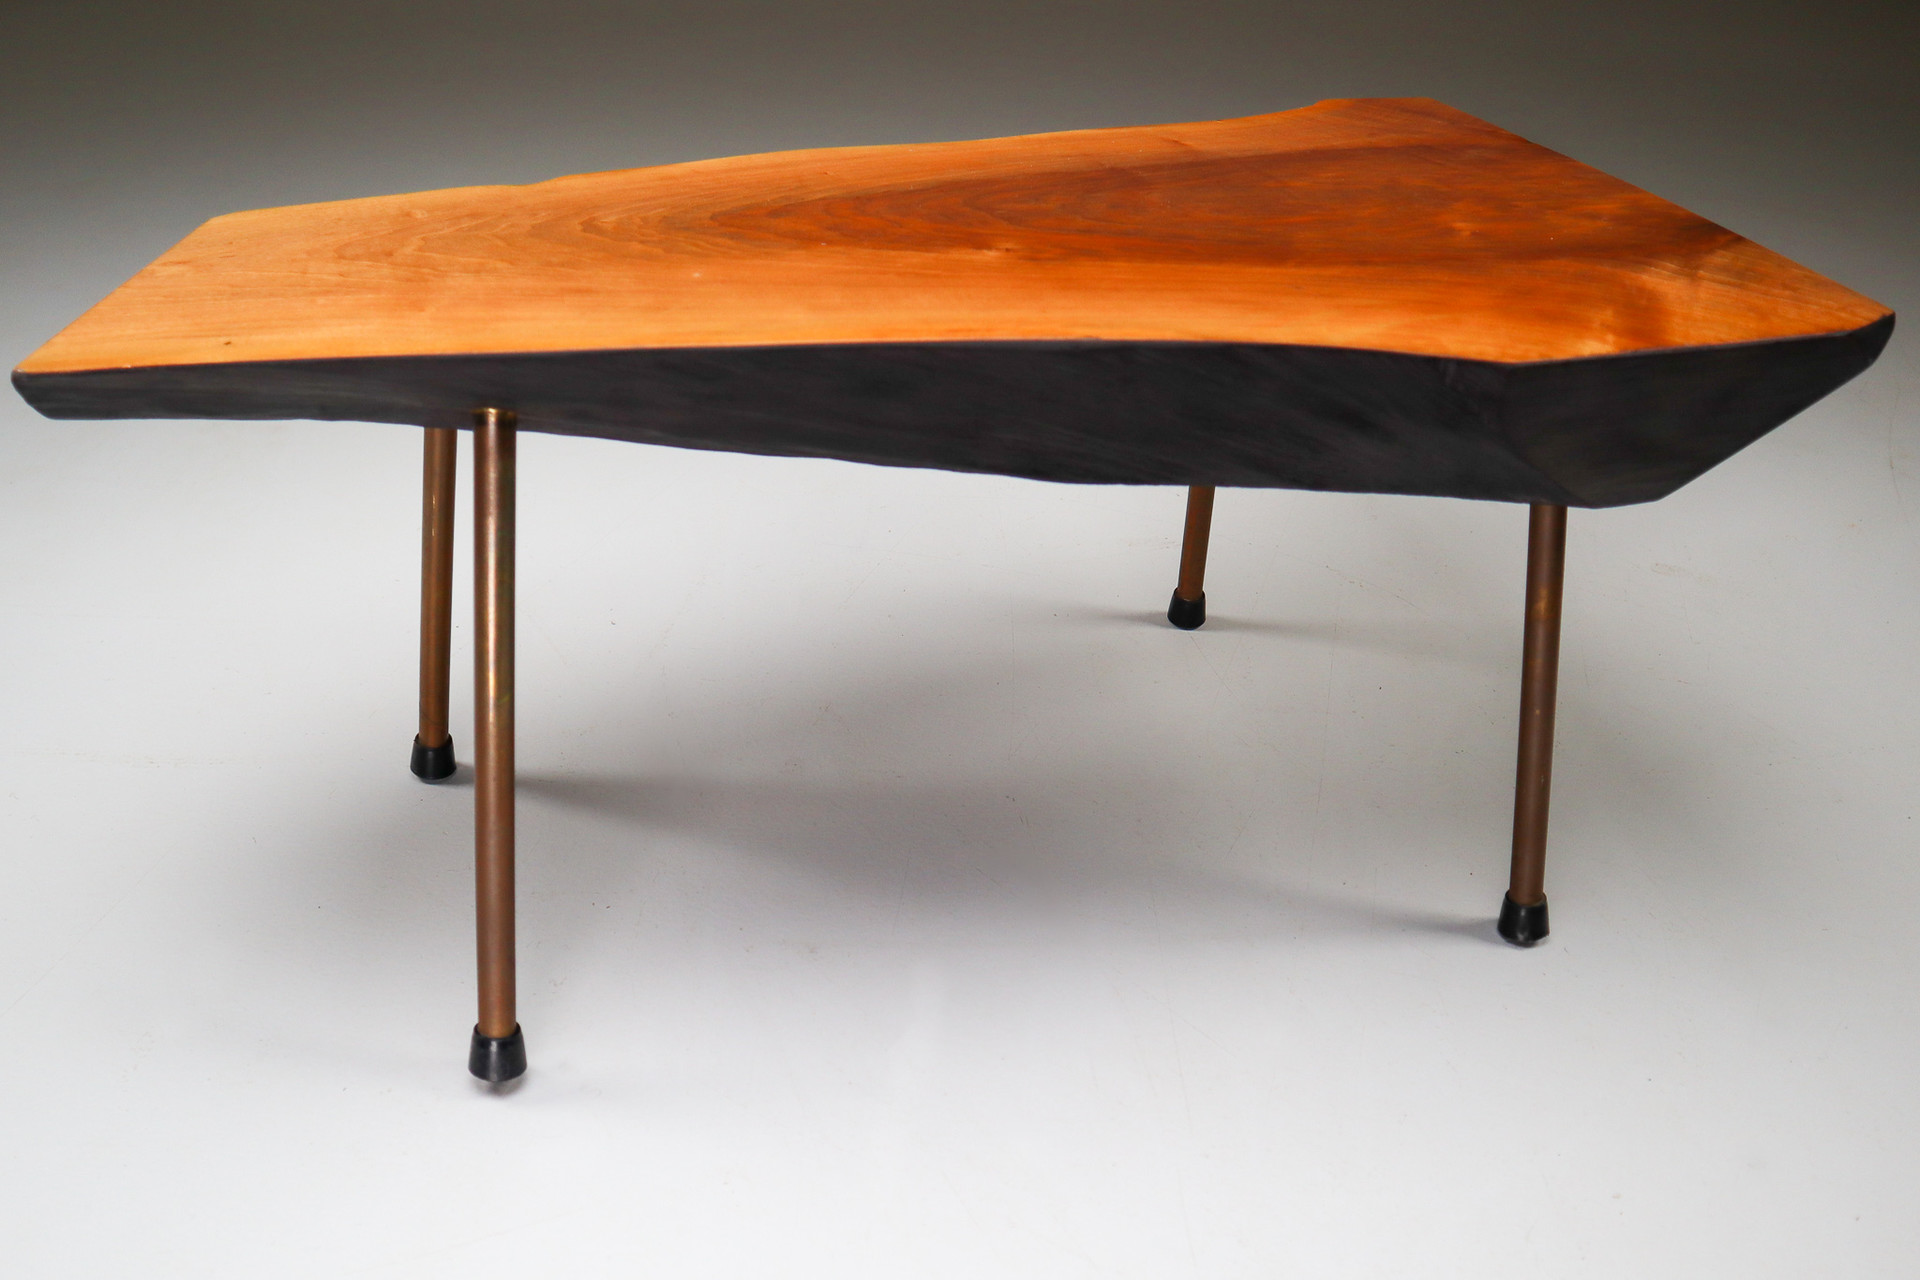 Wood Trunk Coffee Tables Marcuscable Com